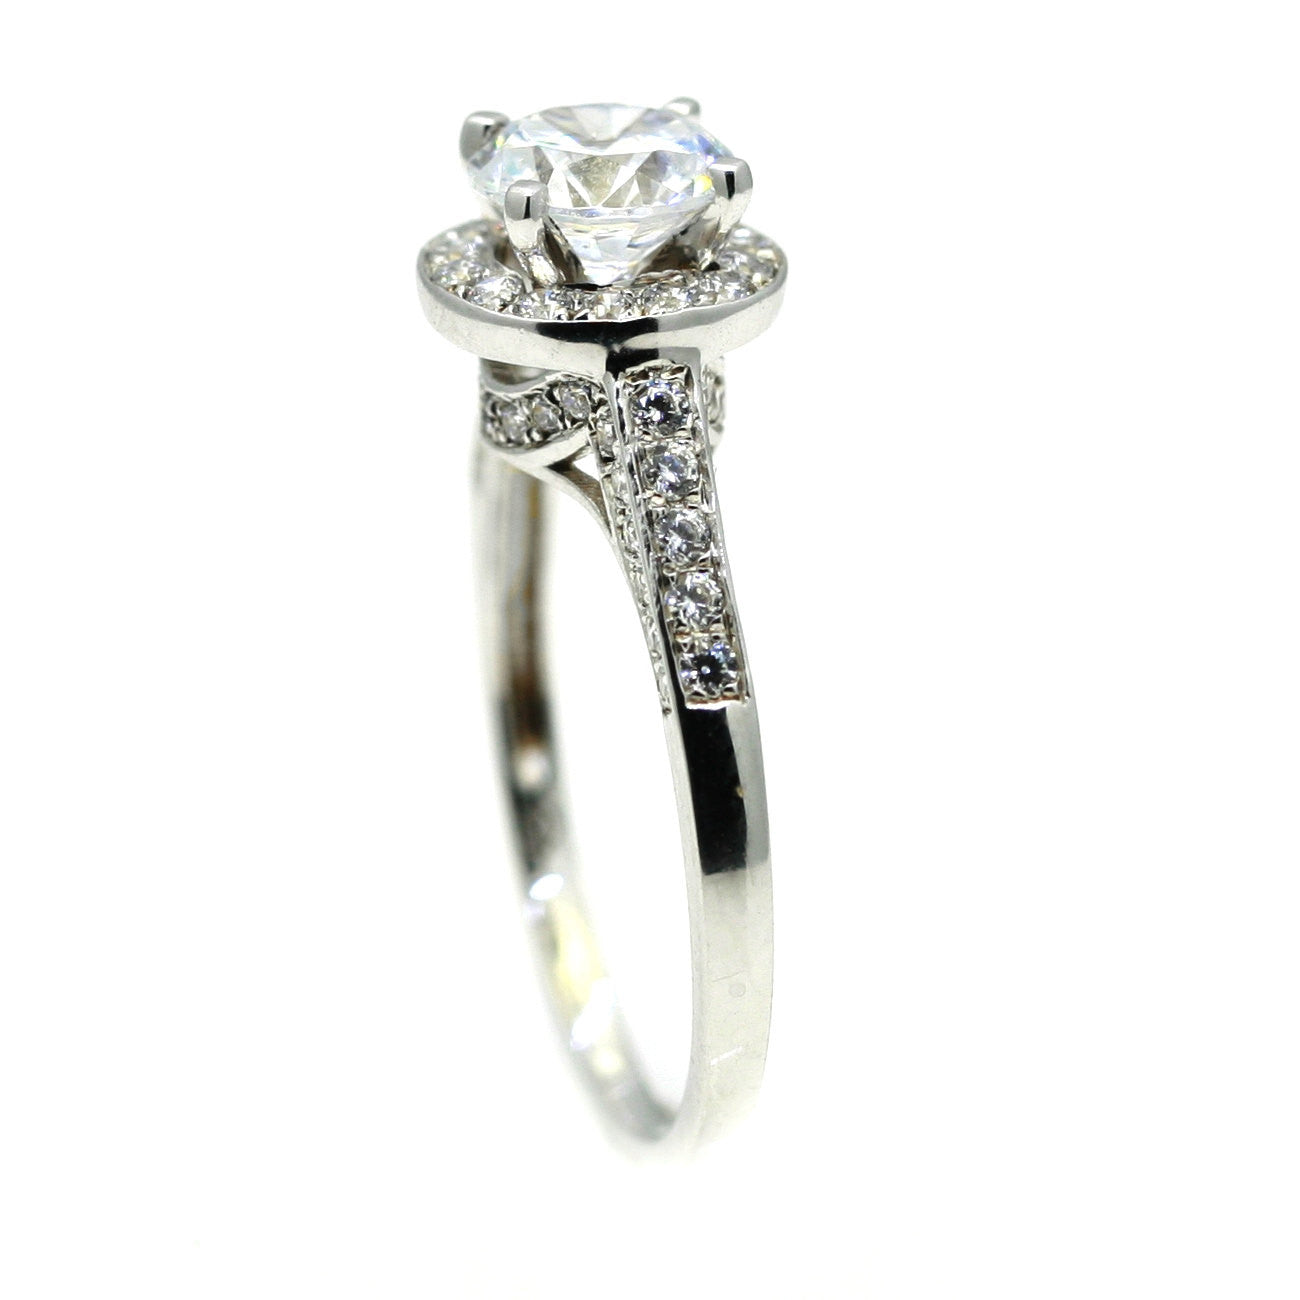 Unique Semi Mount Halo Engagement Ring, With .55 Carat Diamonds Accent Stones, For 1 Carat Round Stone, Anniversary Ring - 85036